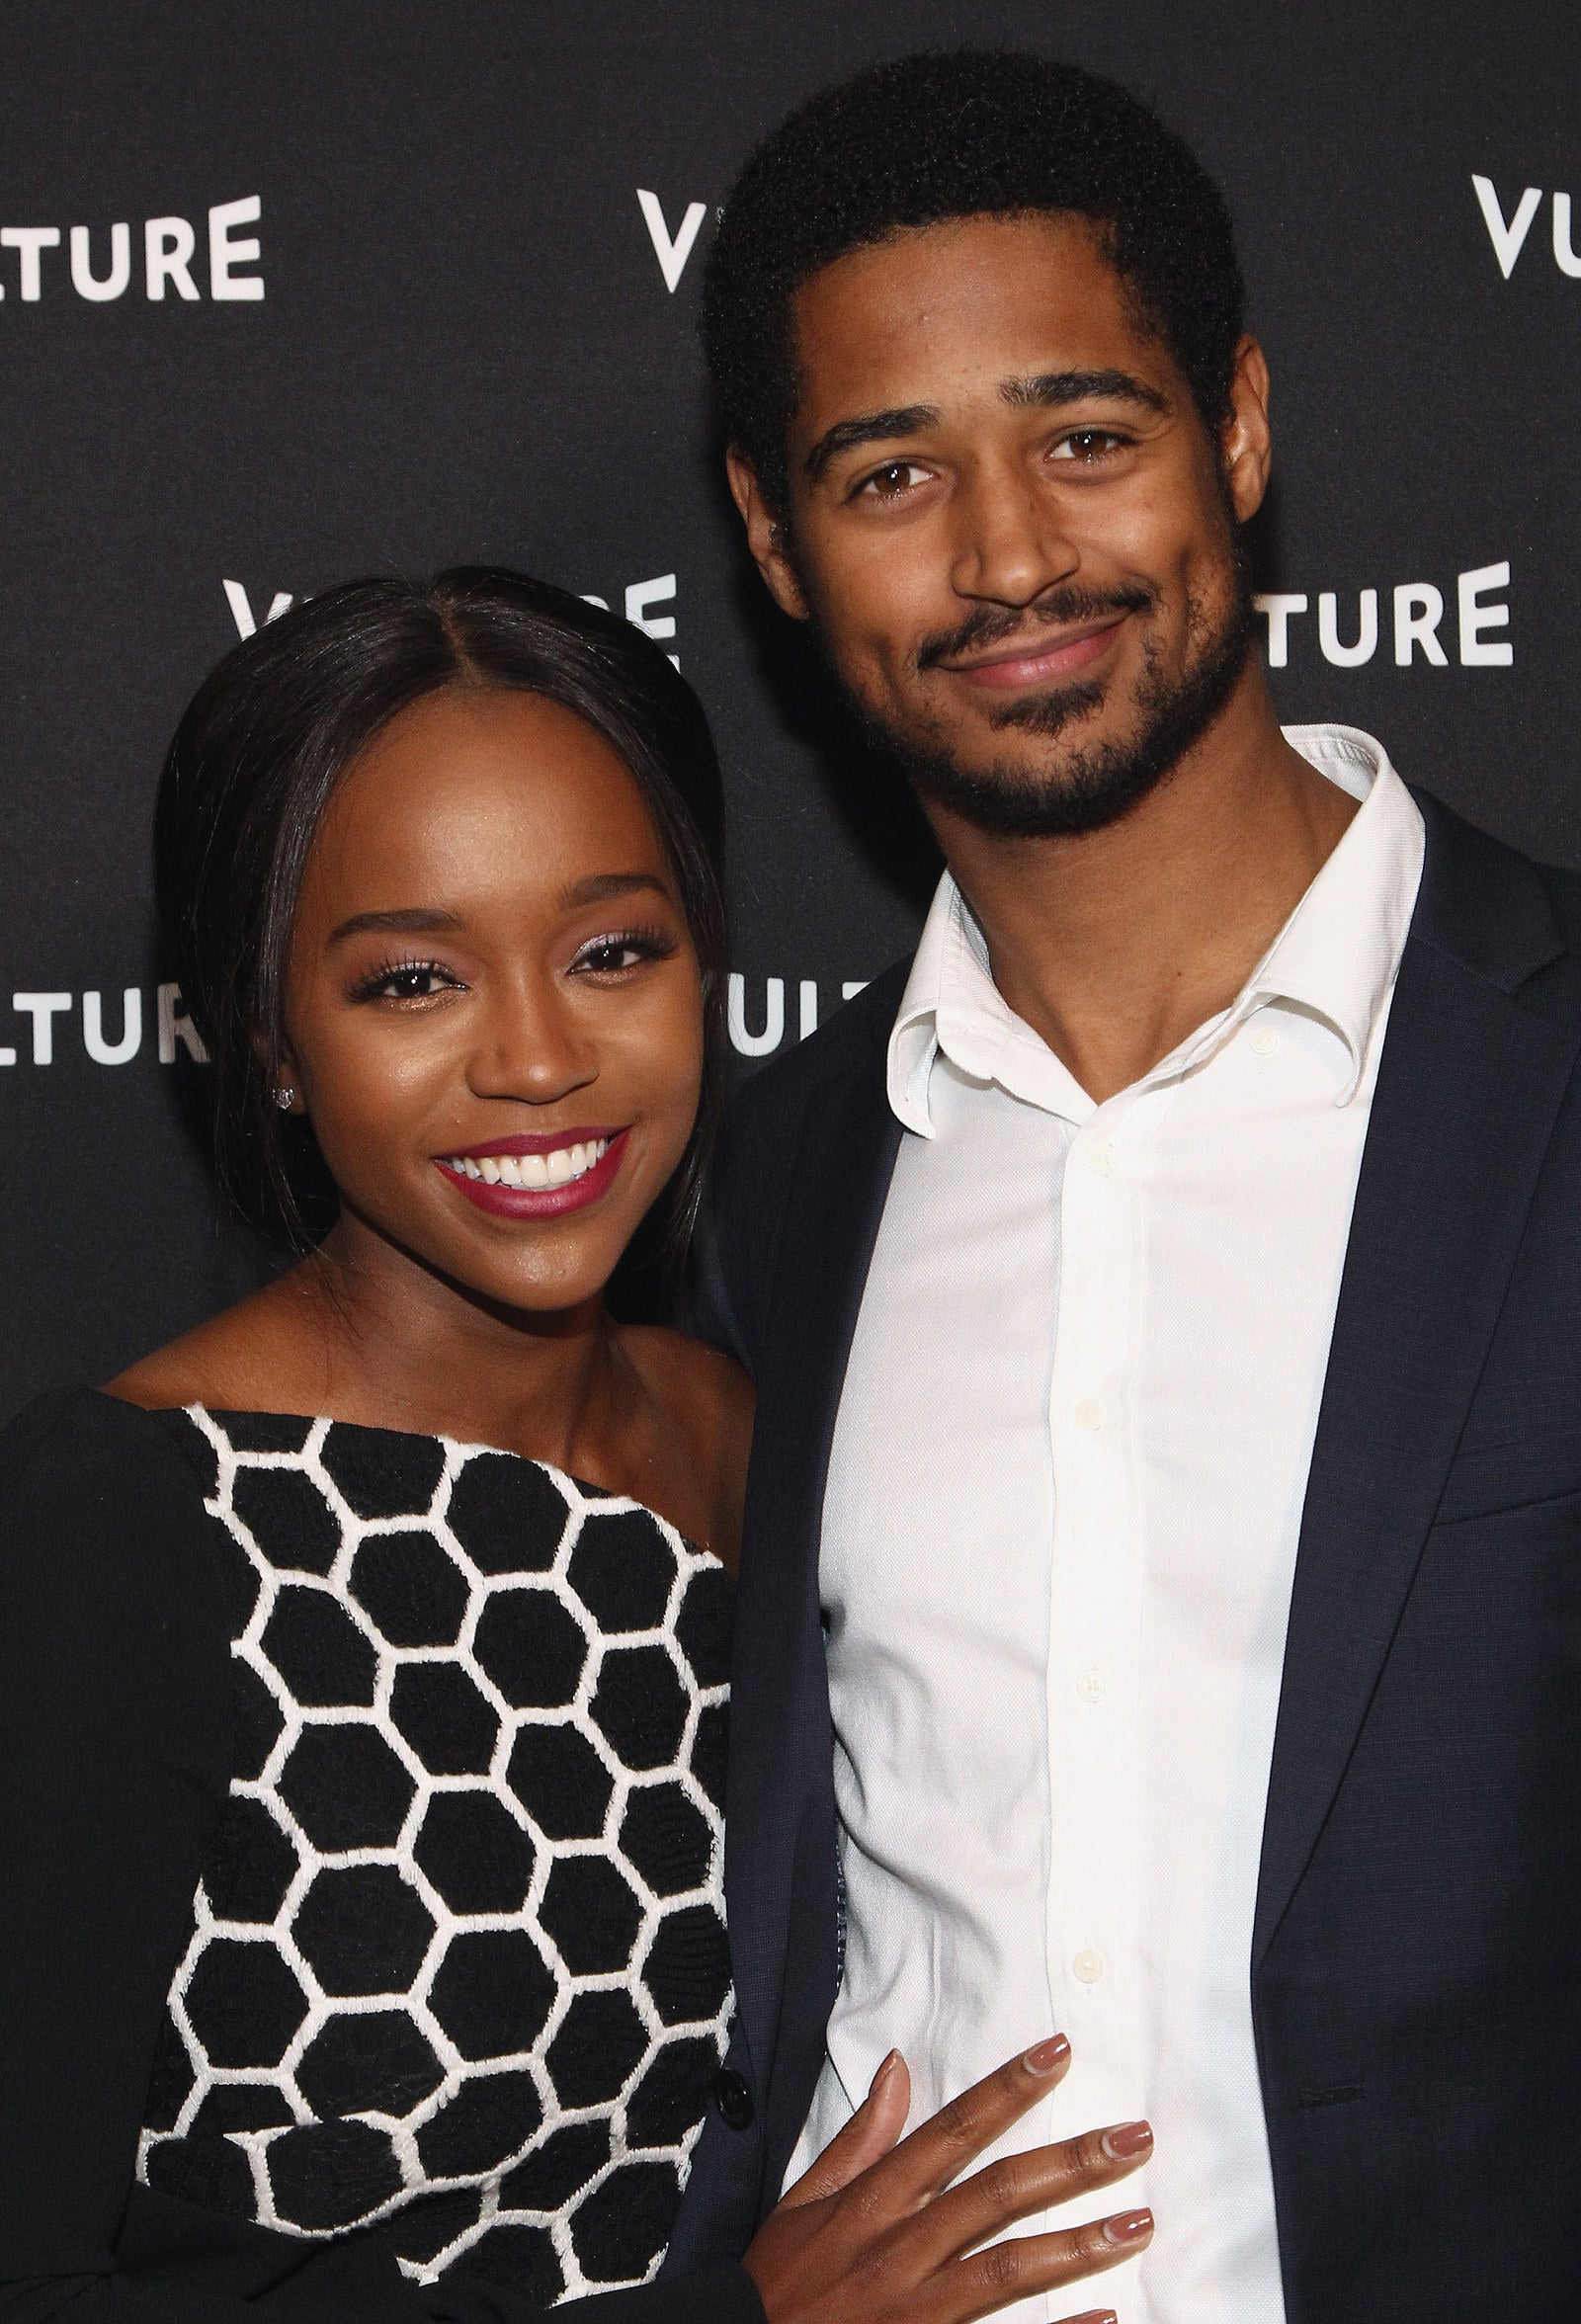 Most of you know the handsomely talented Alfred Enoch as Wes Gibbins from ABC's hit show How to Get Away With Murder.